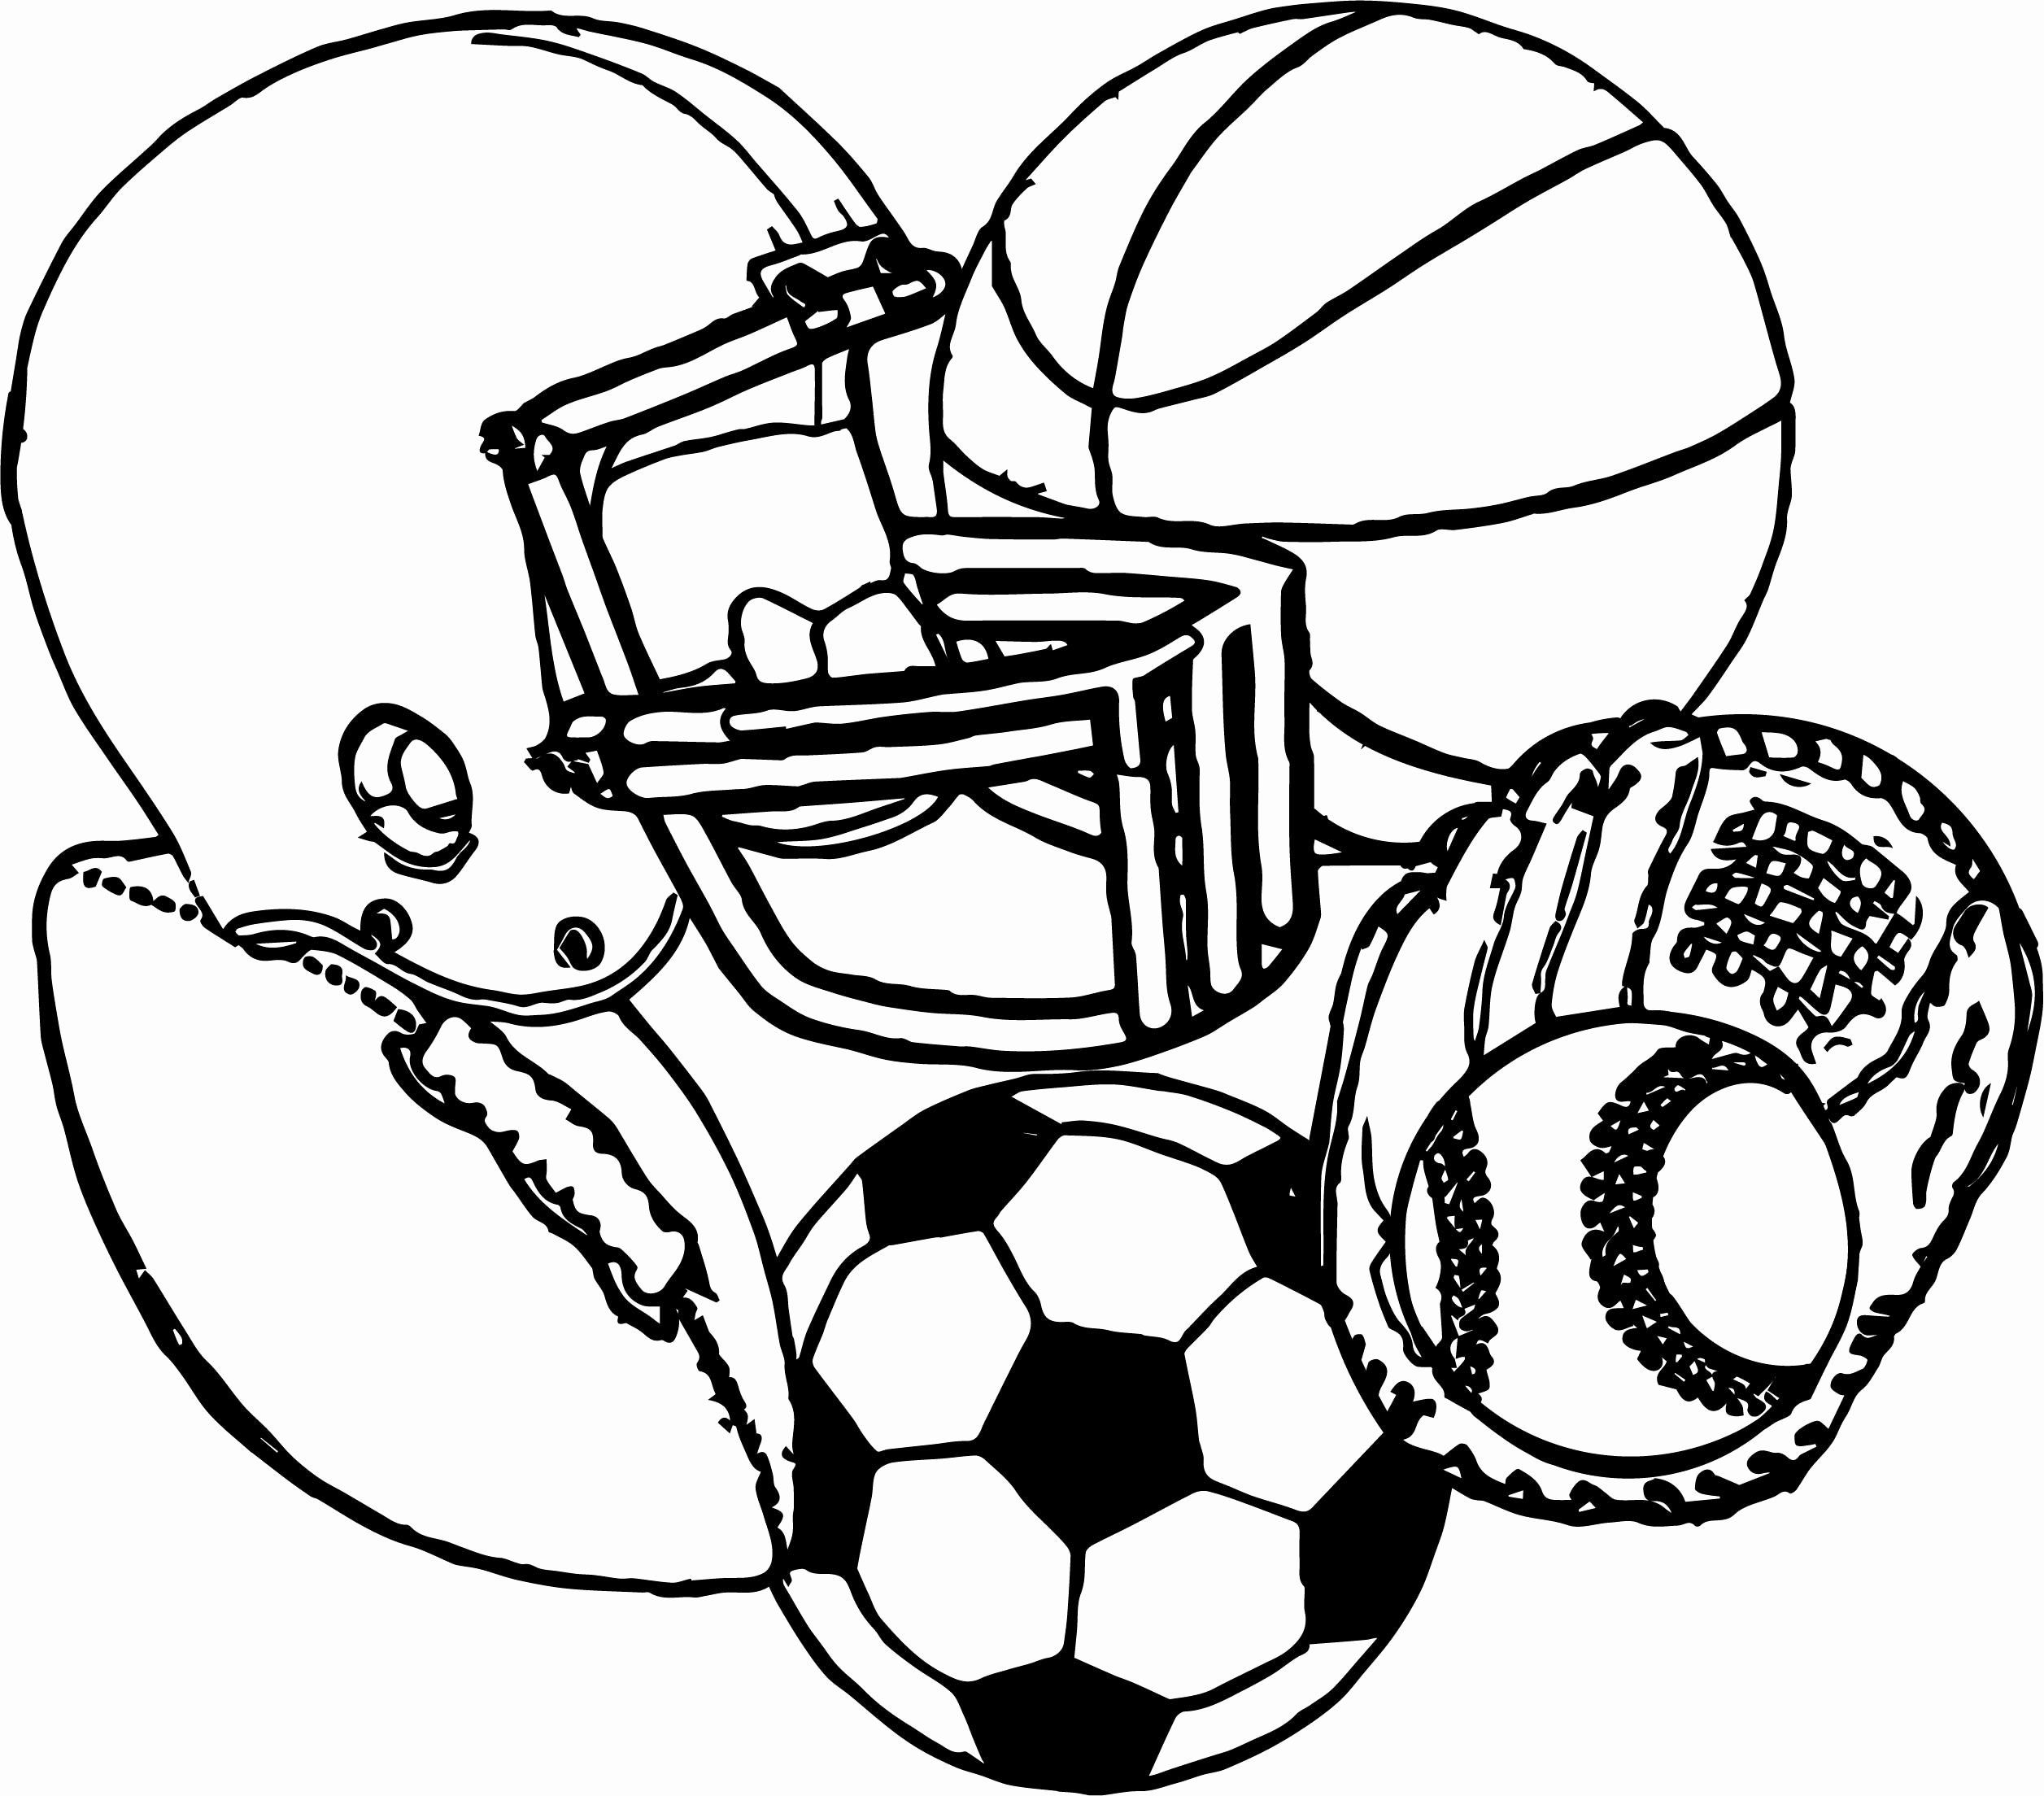 Sports Coloring Pages Free Printable Inspirational Sports Equipment Football Baseball Bas Sports Coloring Pages Football Coloring Pages Baseball Coloring Pages